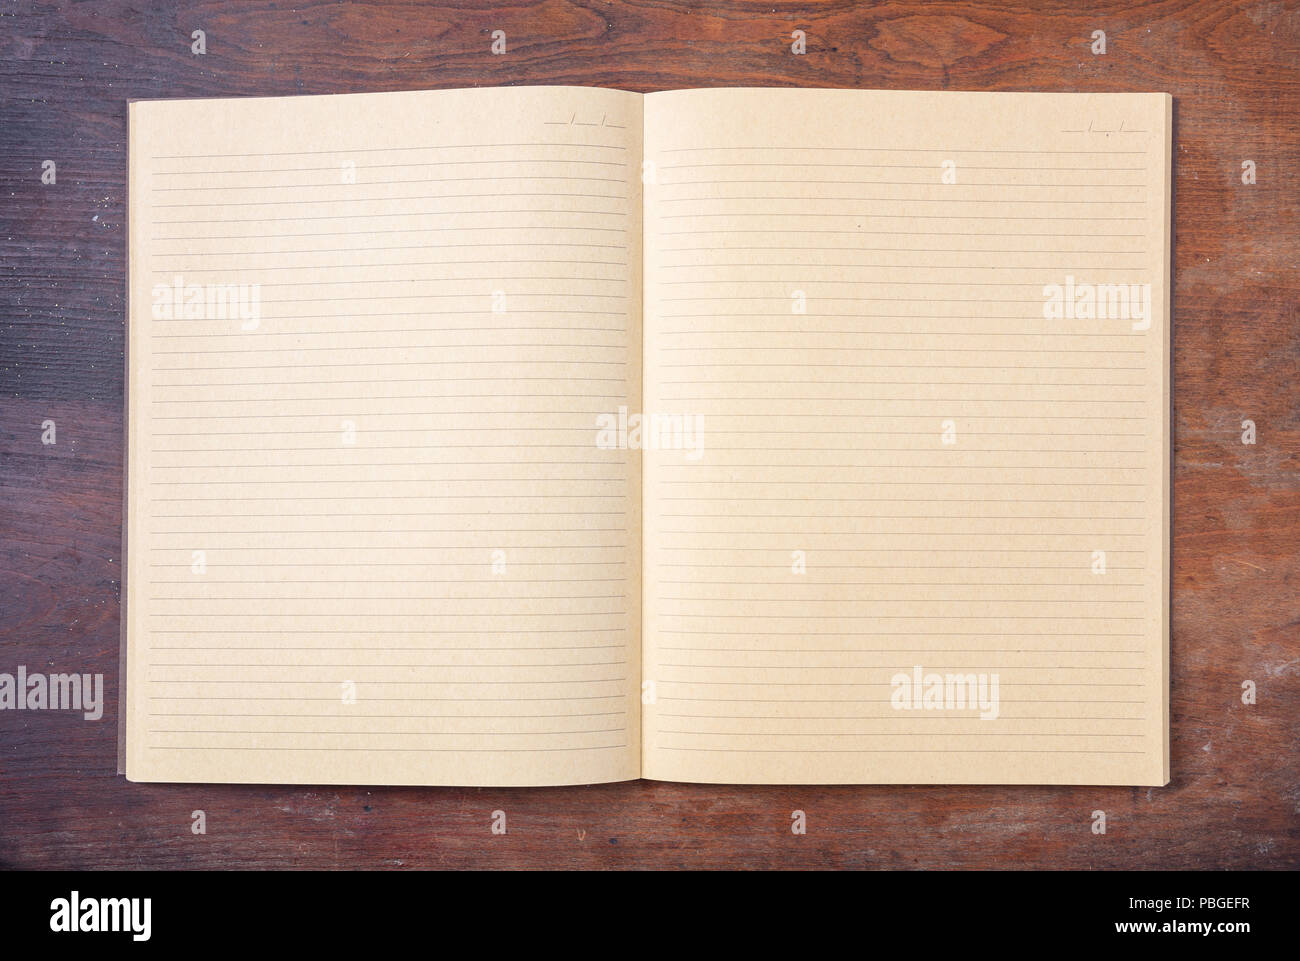 Open Blank School Notebook Or Diary, Old Fashioned, Isolated On Wooden Desk,  Space For Text, Top View